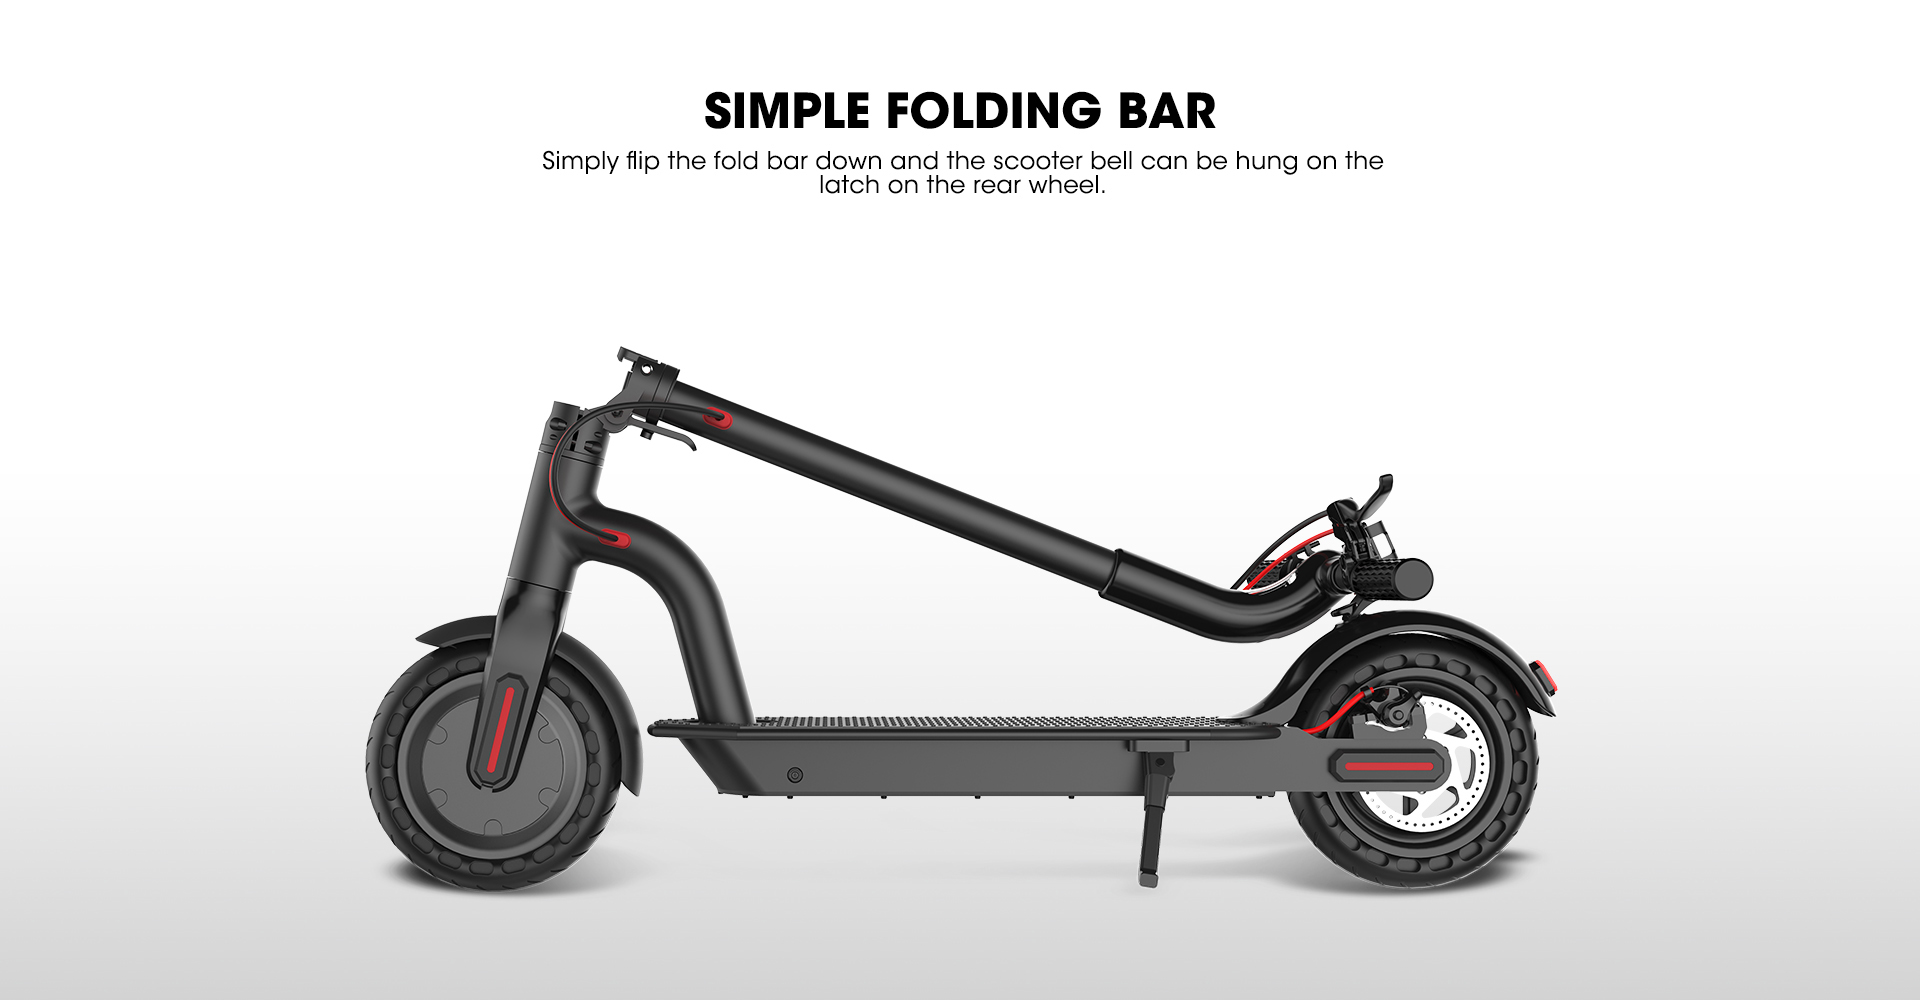 foldable-electric-scooter-simple-folding-bar